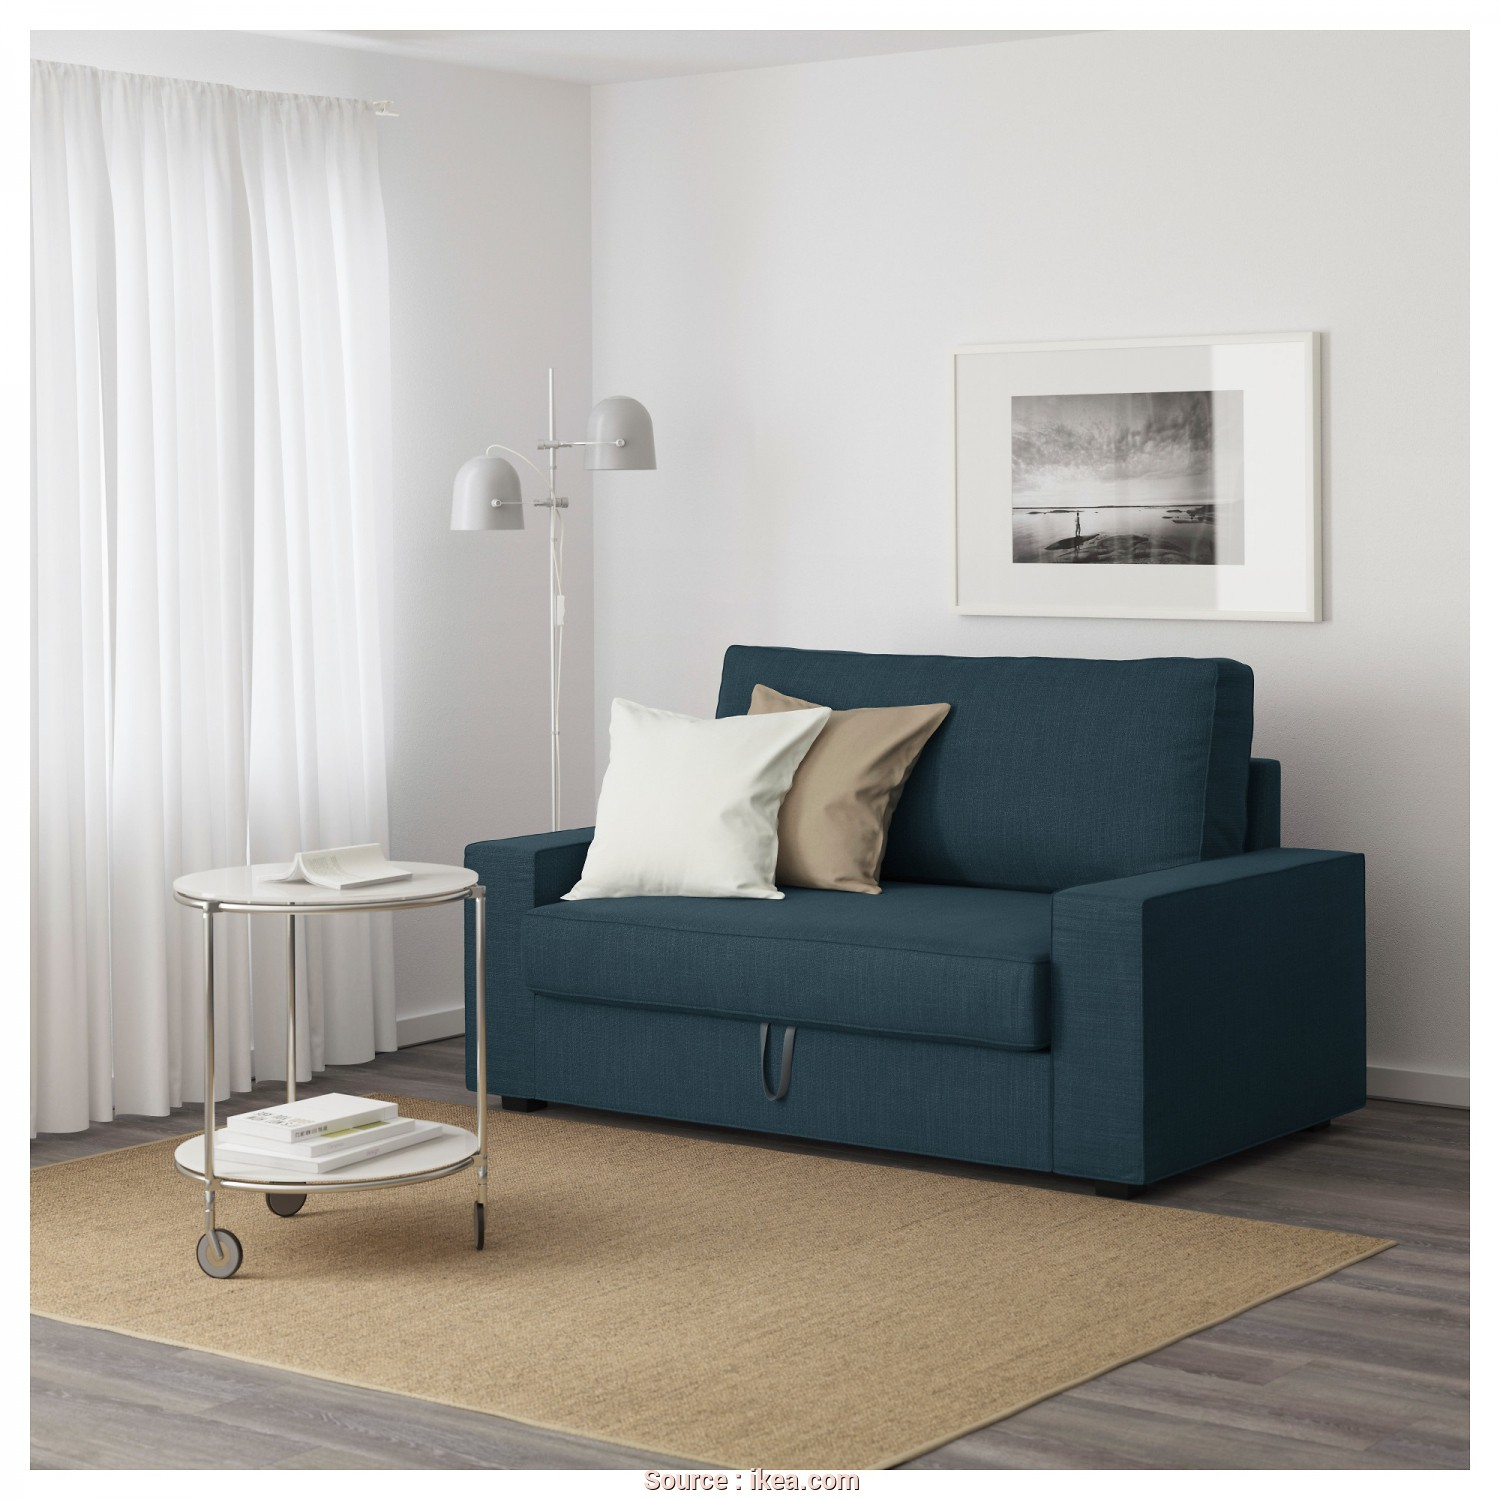 Vilasund Ikea España, Rustico VILASUND Two-Seat Sofa-Bed Hillared Dark Blue